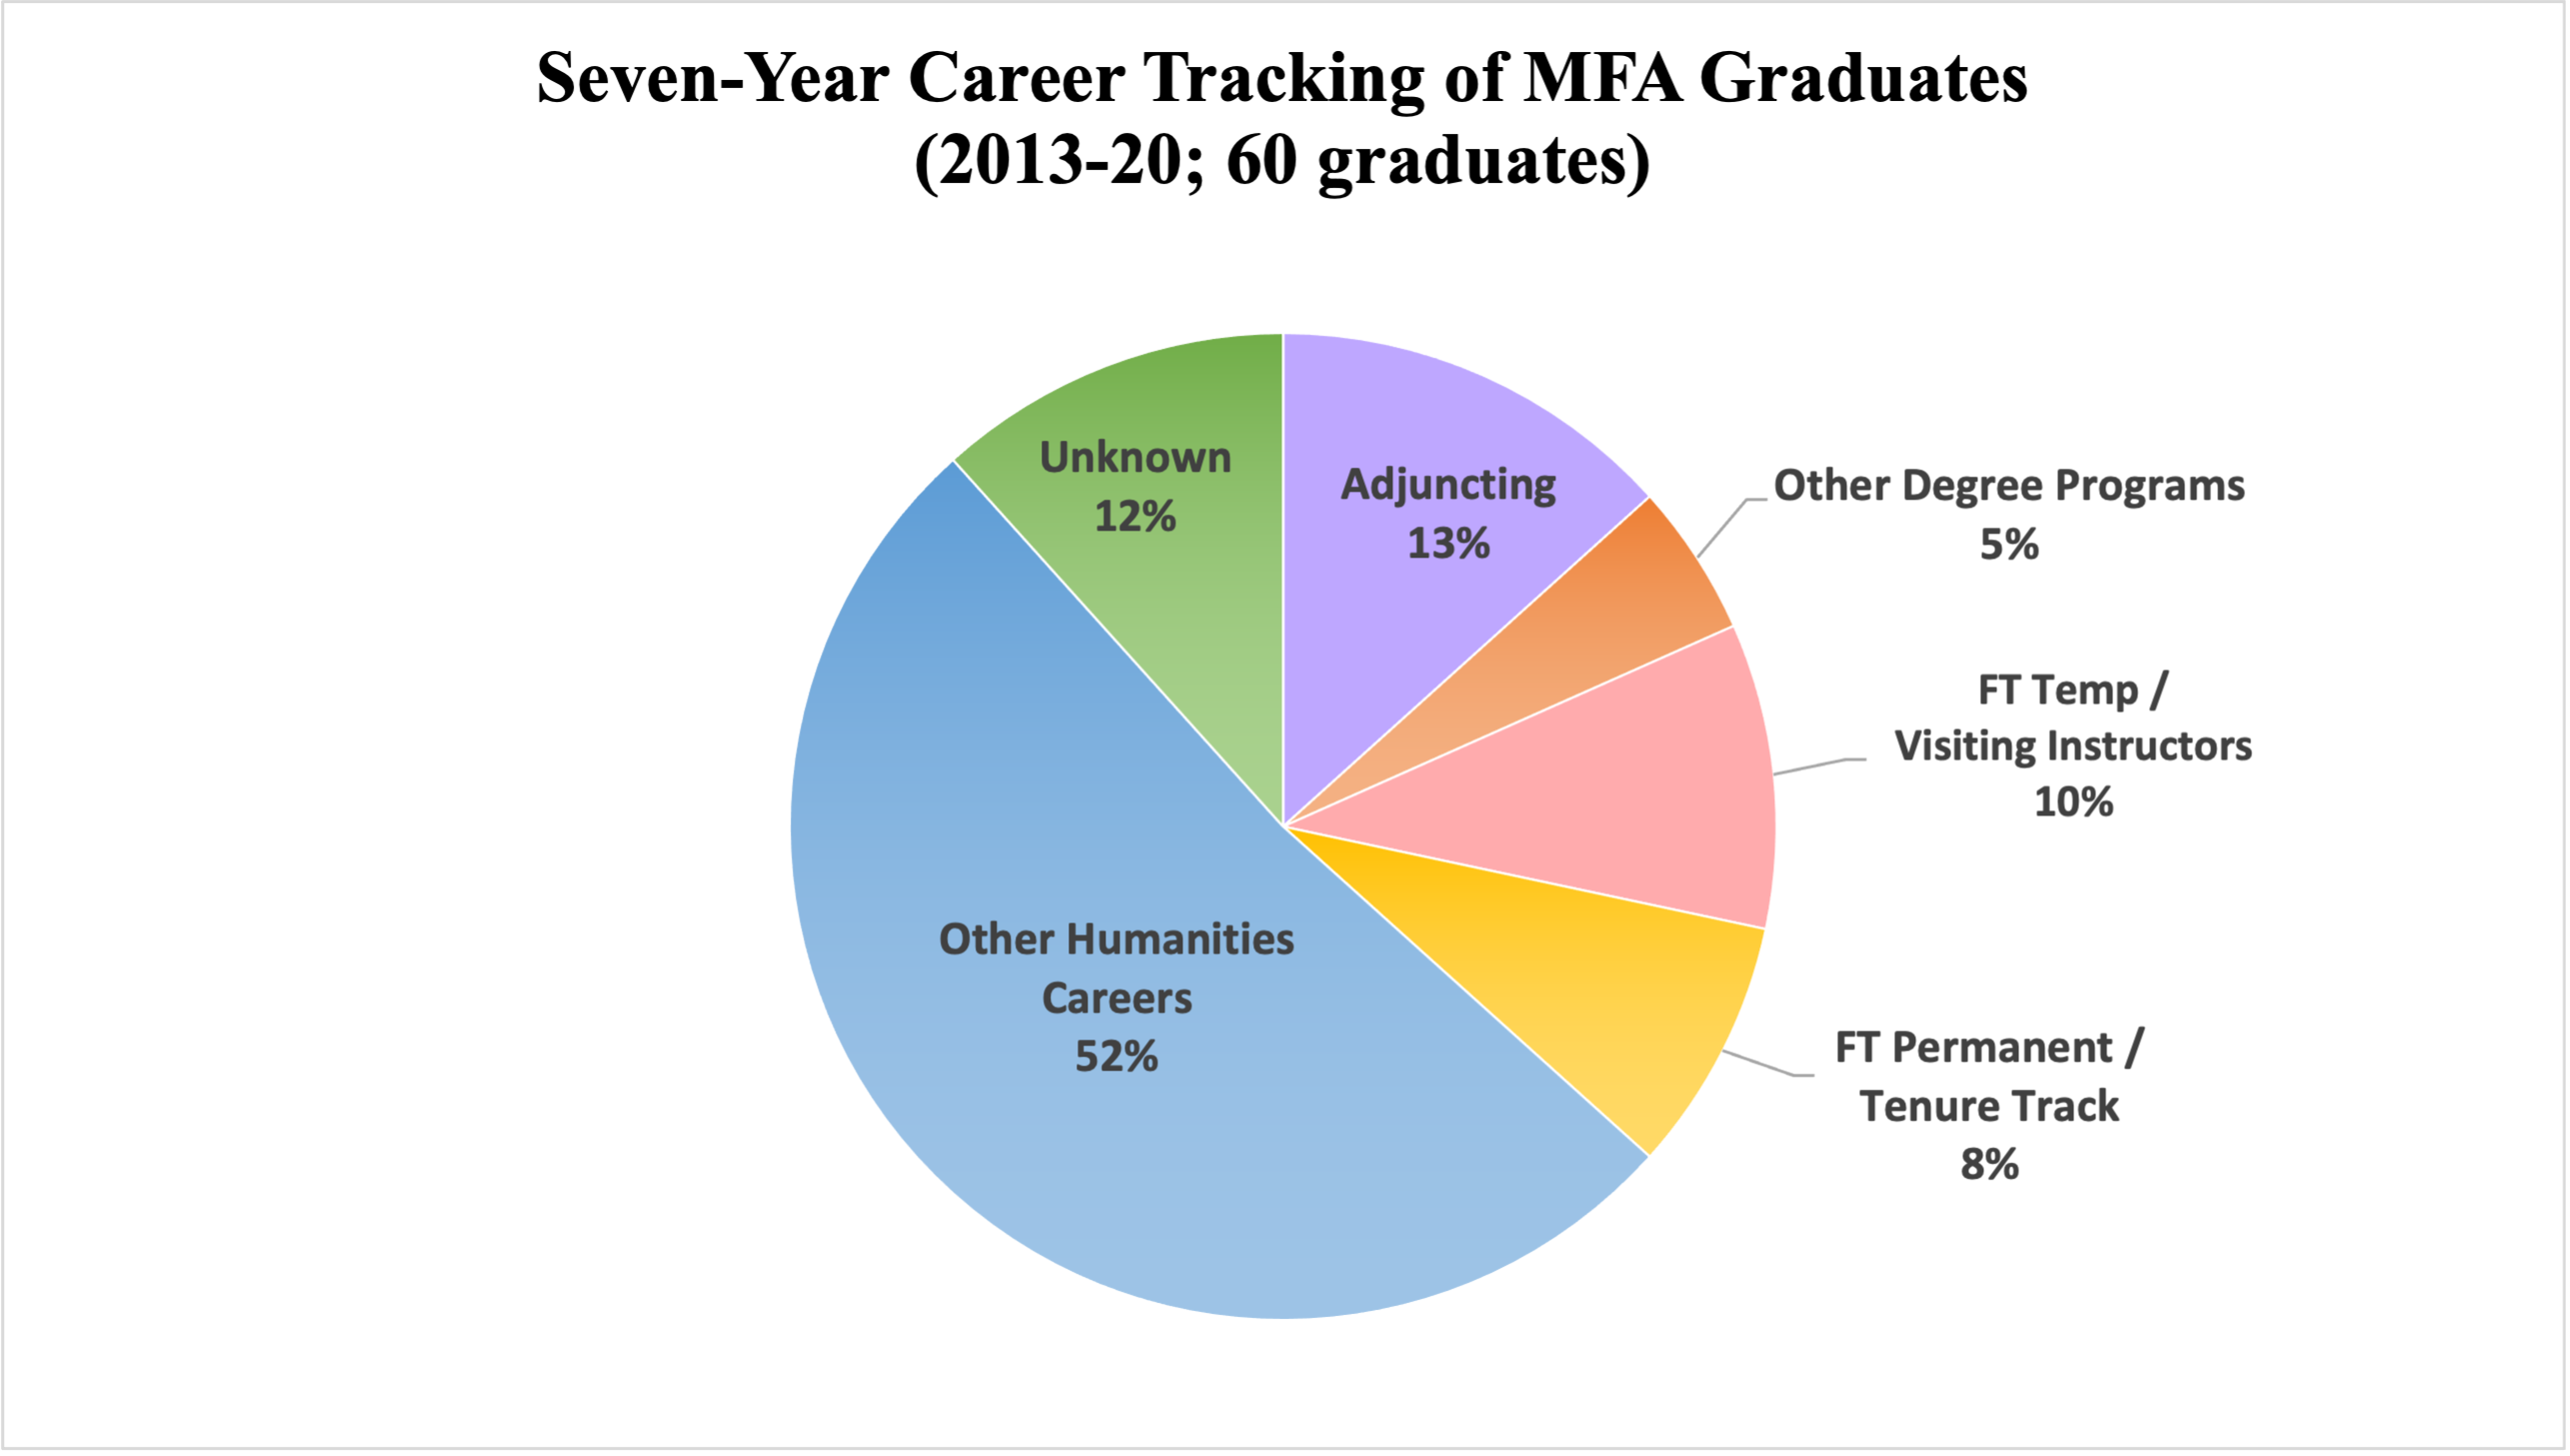 Pie chart showing 5-year (2013-2018) career tracking of 50 MFA graduates: 38% other humanities careers, 26% FT Temp, 18% unknown/looking, 8% adjuncting, 8% FT permanent, 2% other degree programs